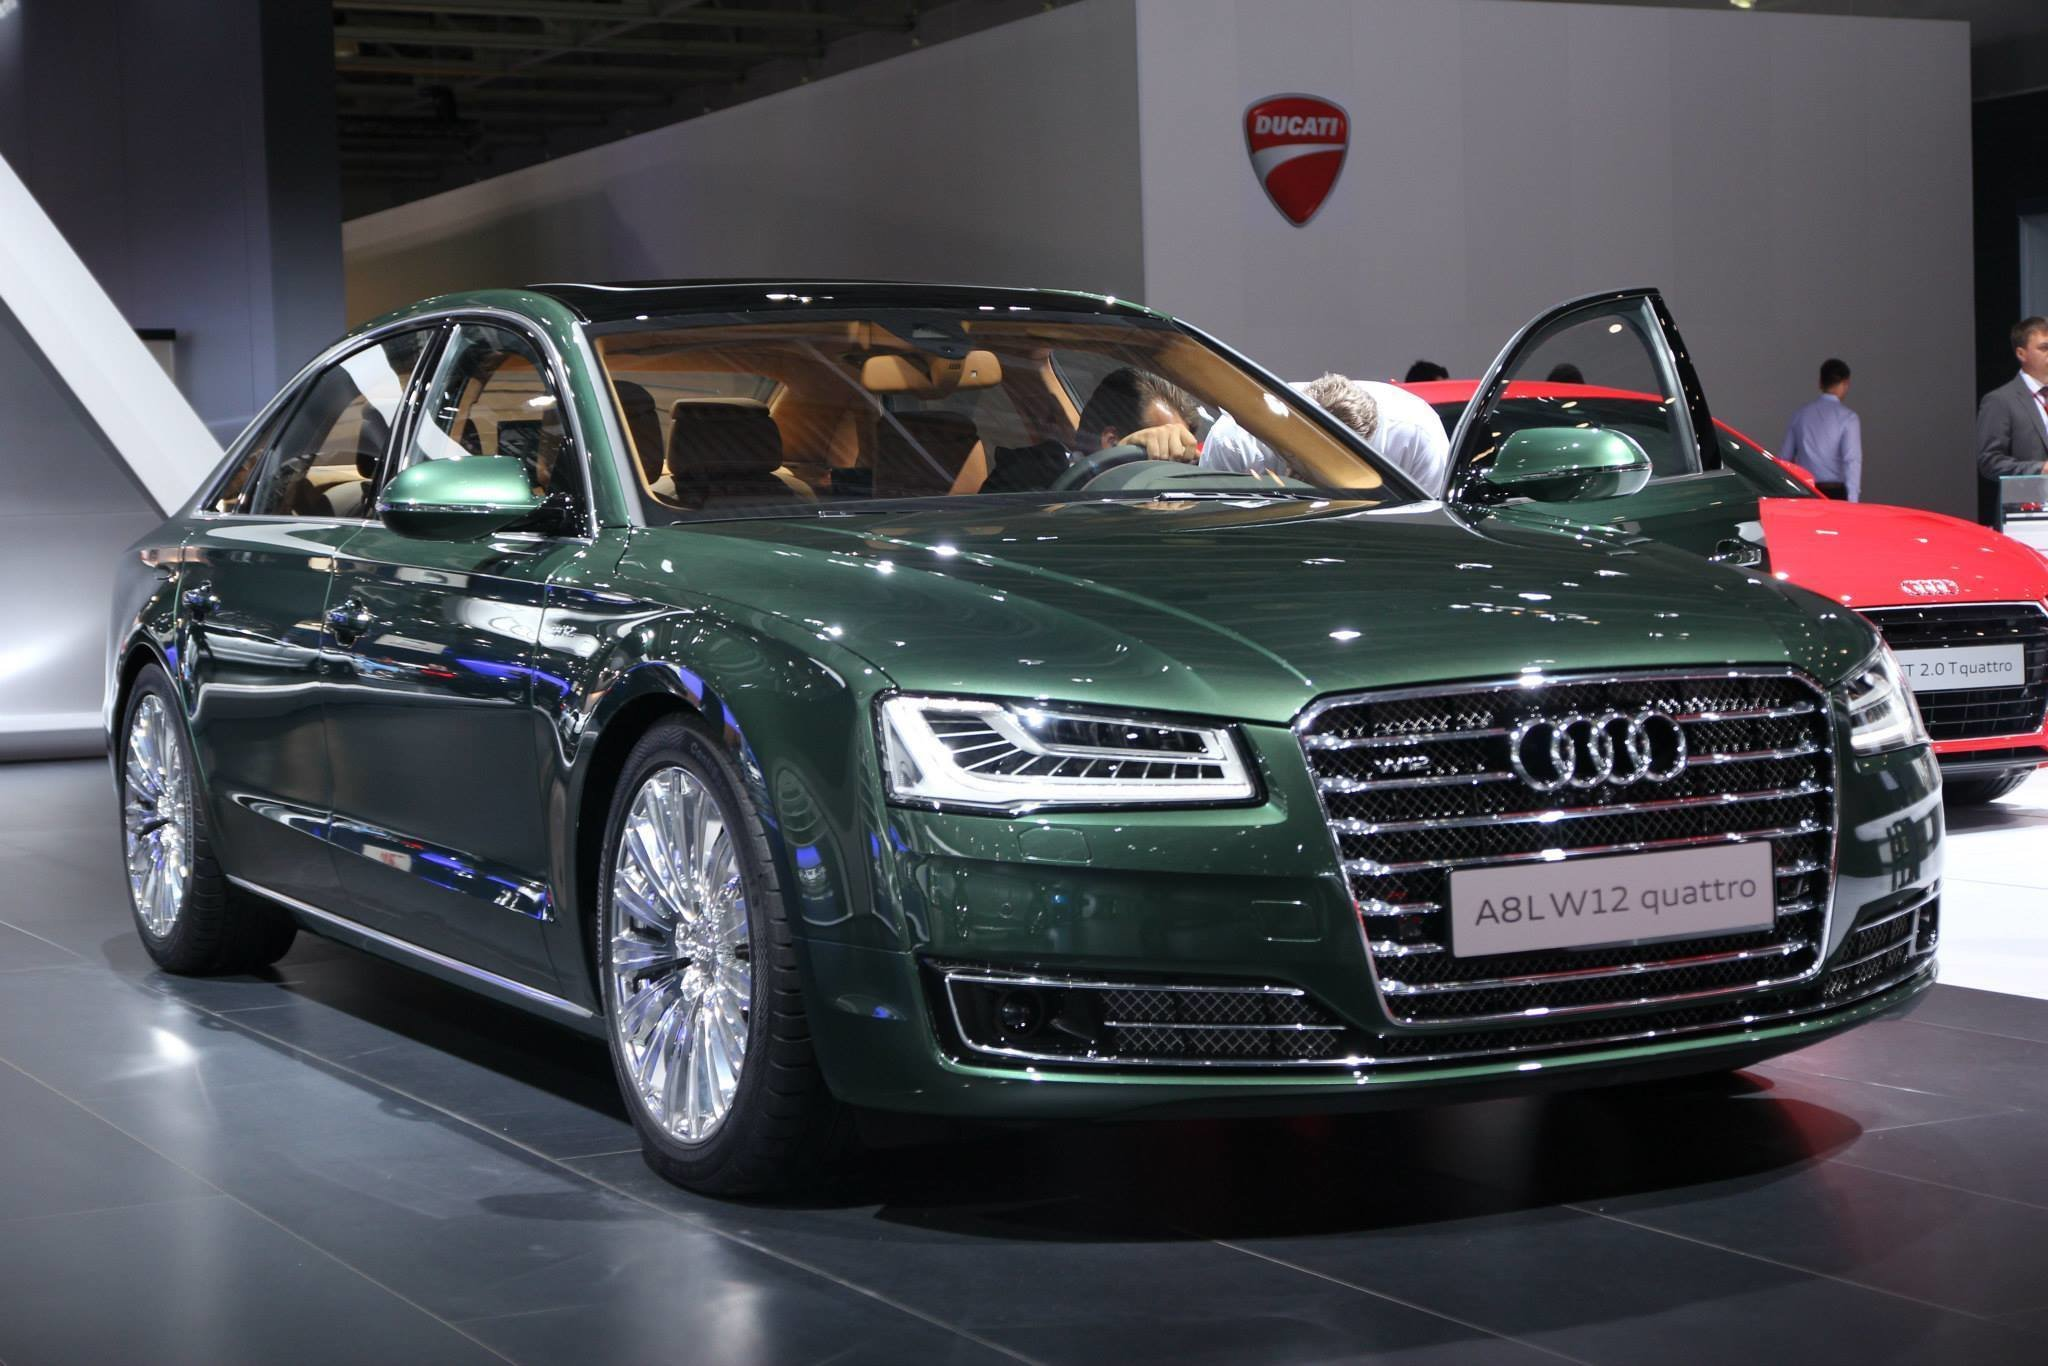 Latest 2017 Audi A7 Reviews 2018 Best Cars Car Illinois Liver Free Download